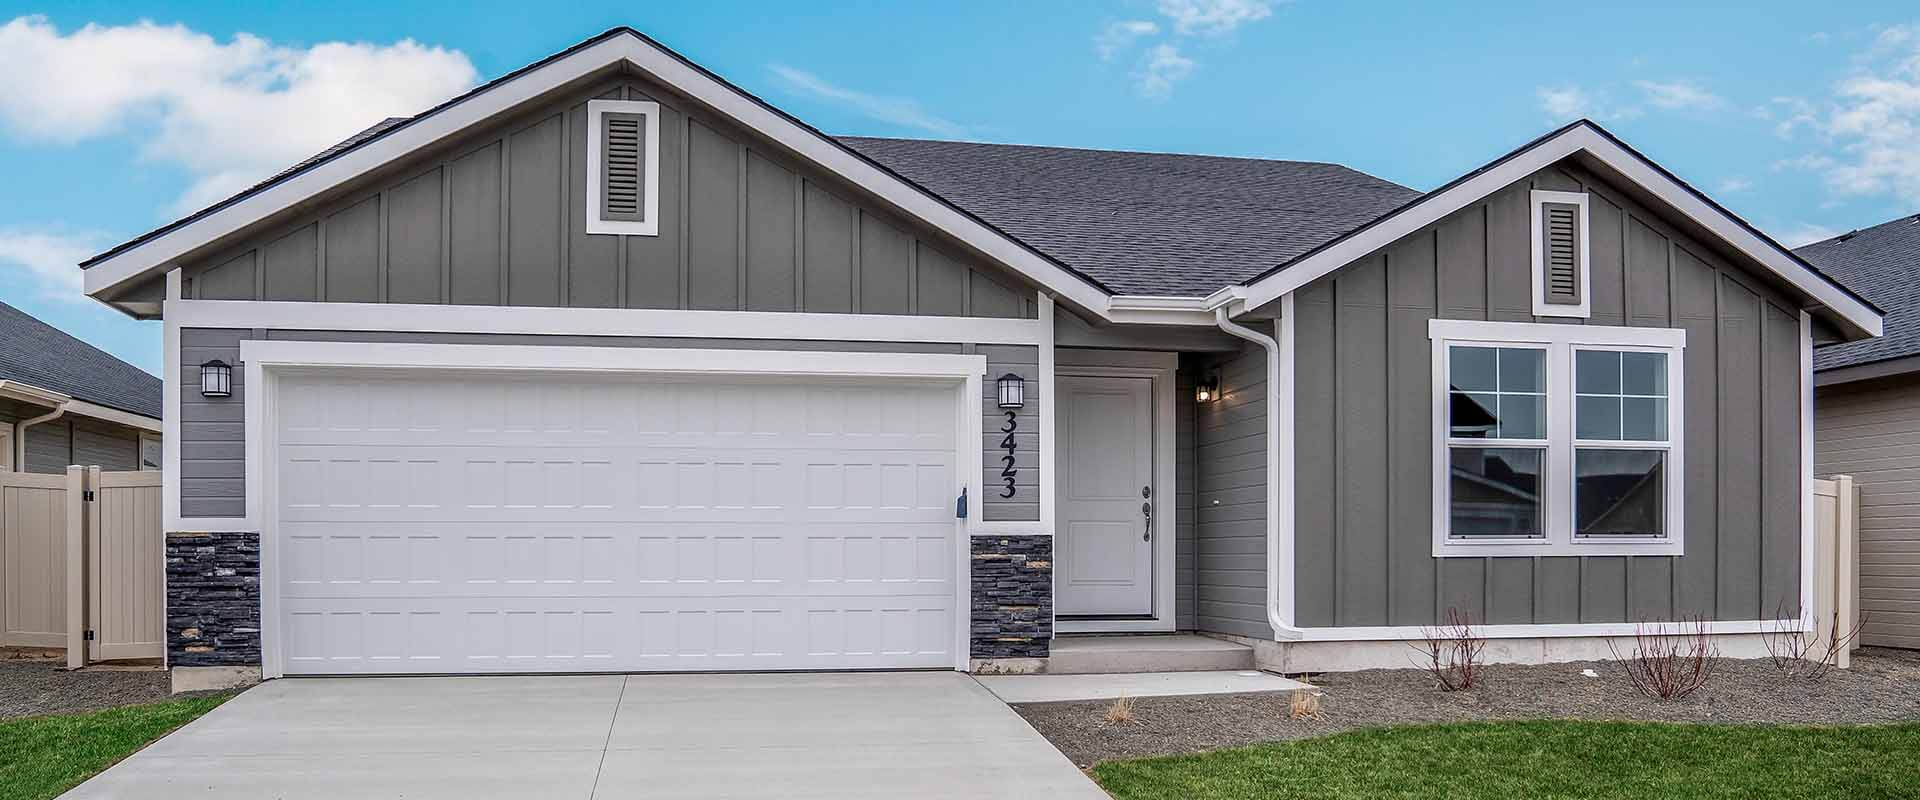 Crestwood_Hubble_Homes_New_Homes_Boise_Exterior5.jpg